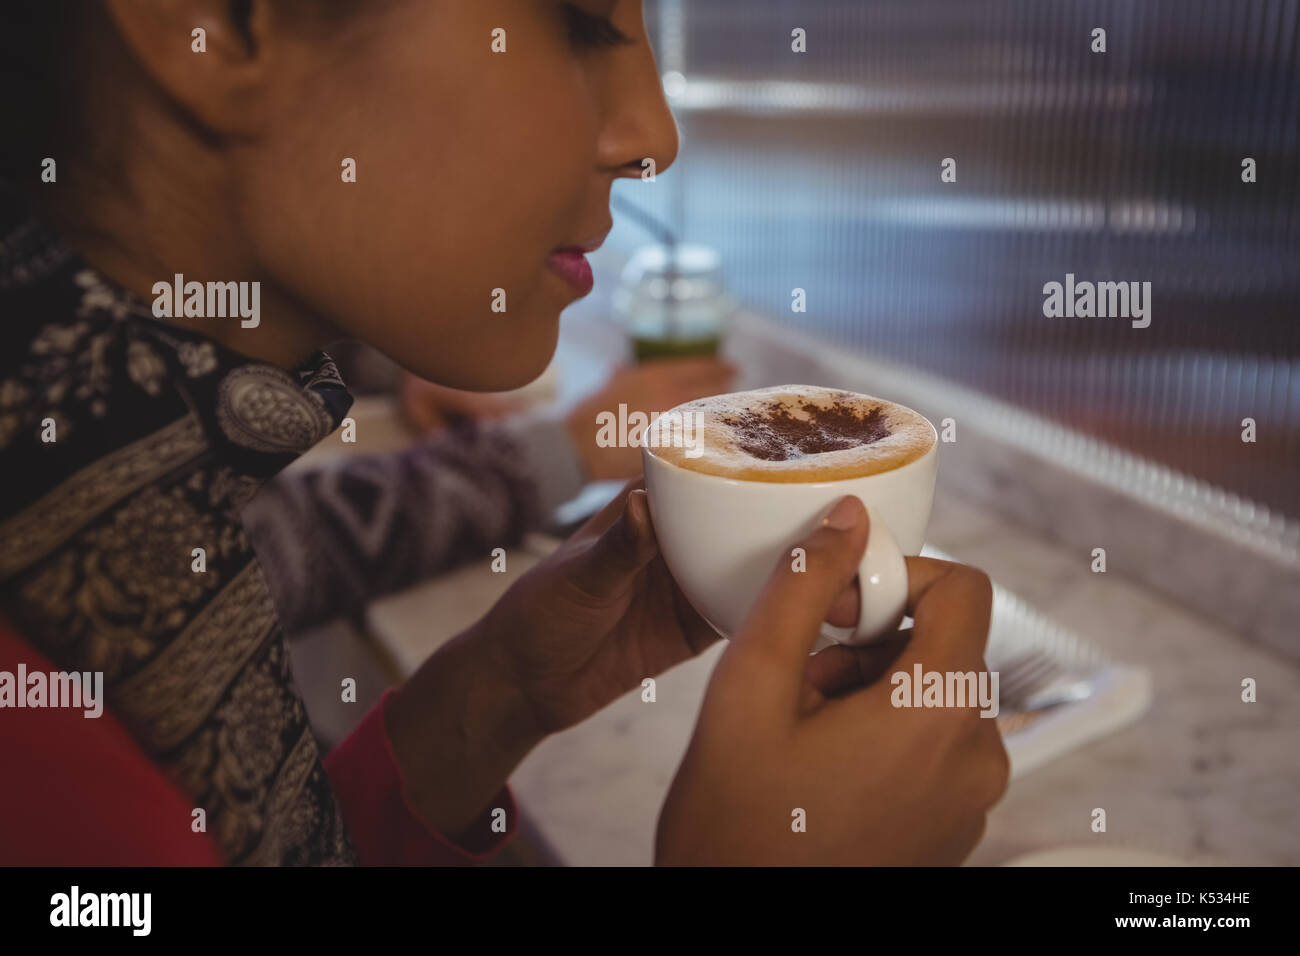 Close-up of young woman having coffee in cafe Stock Photo